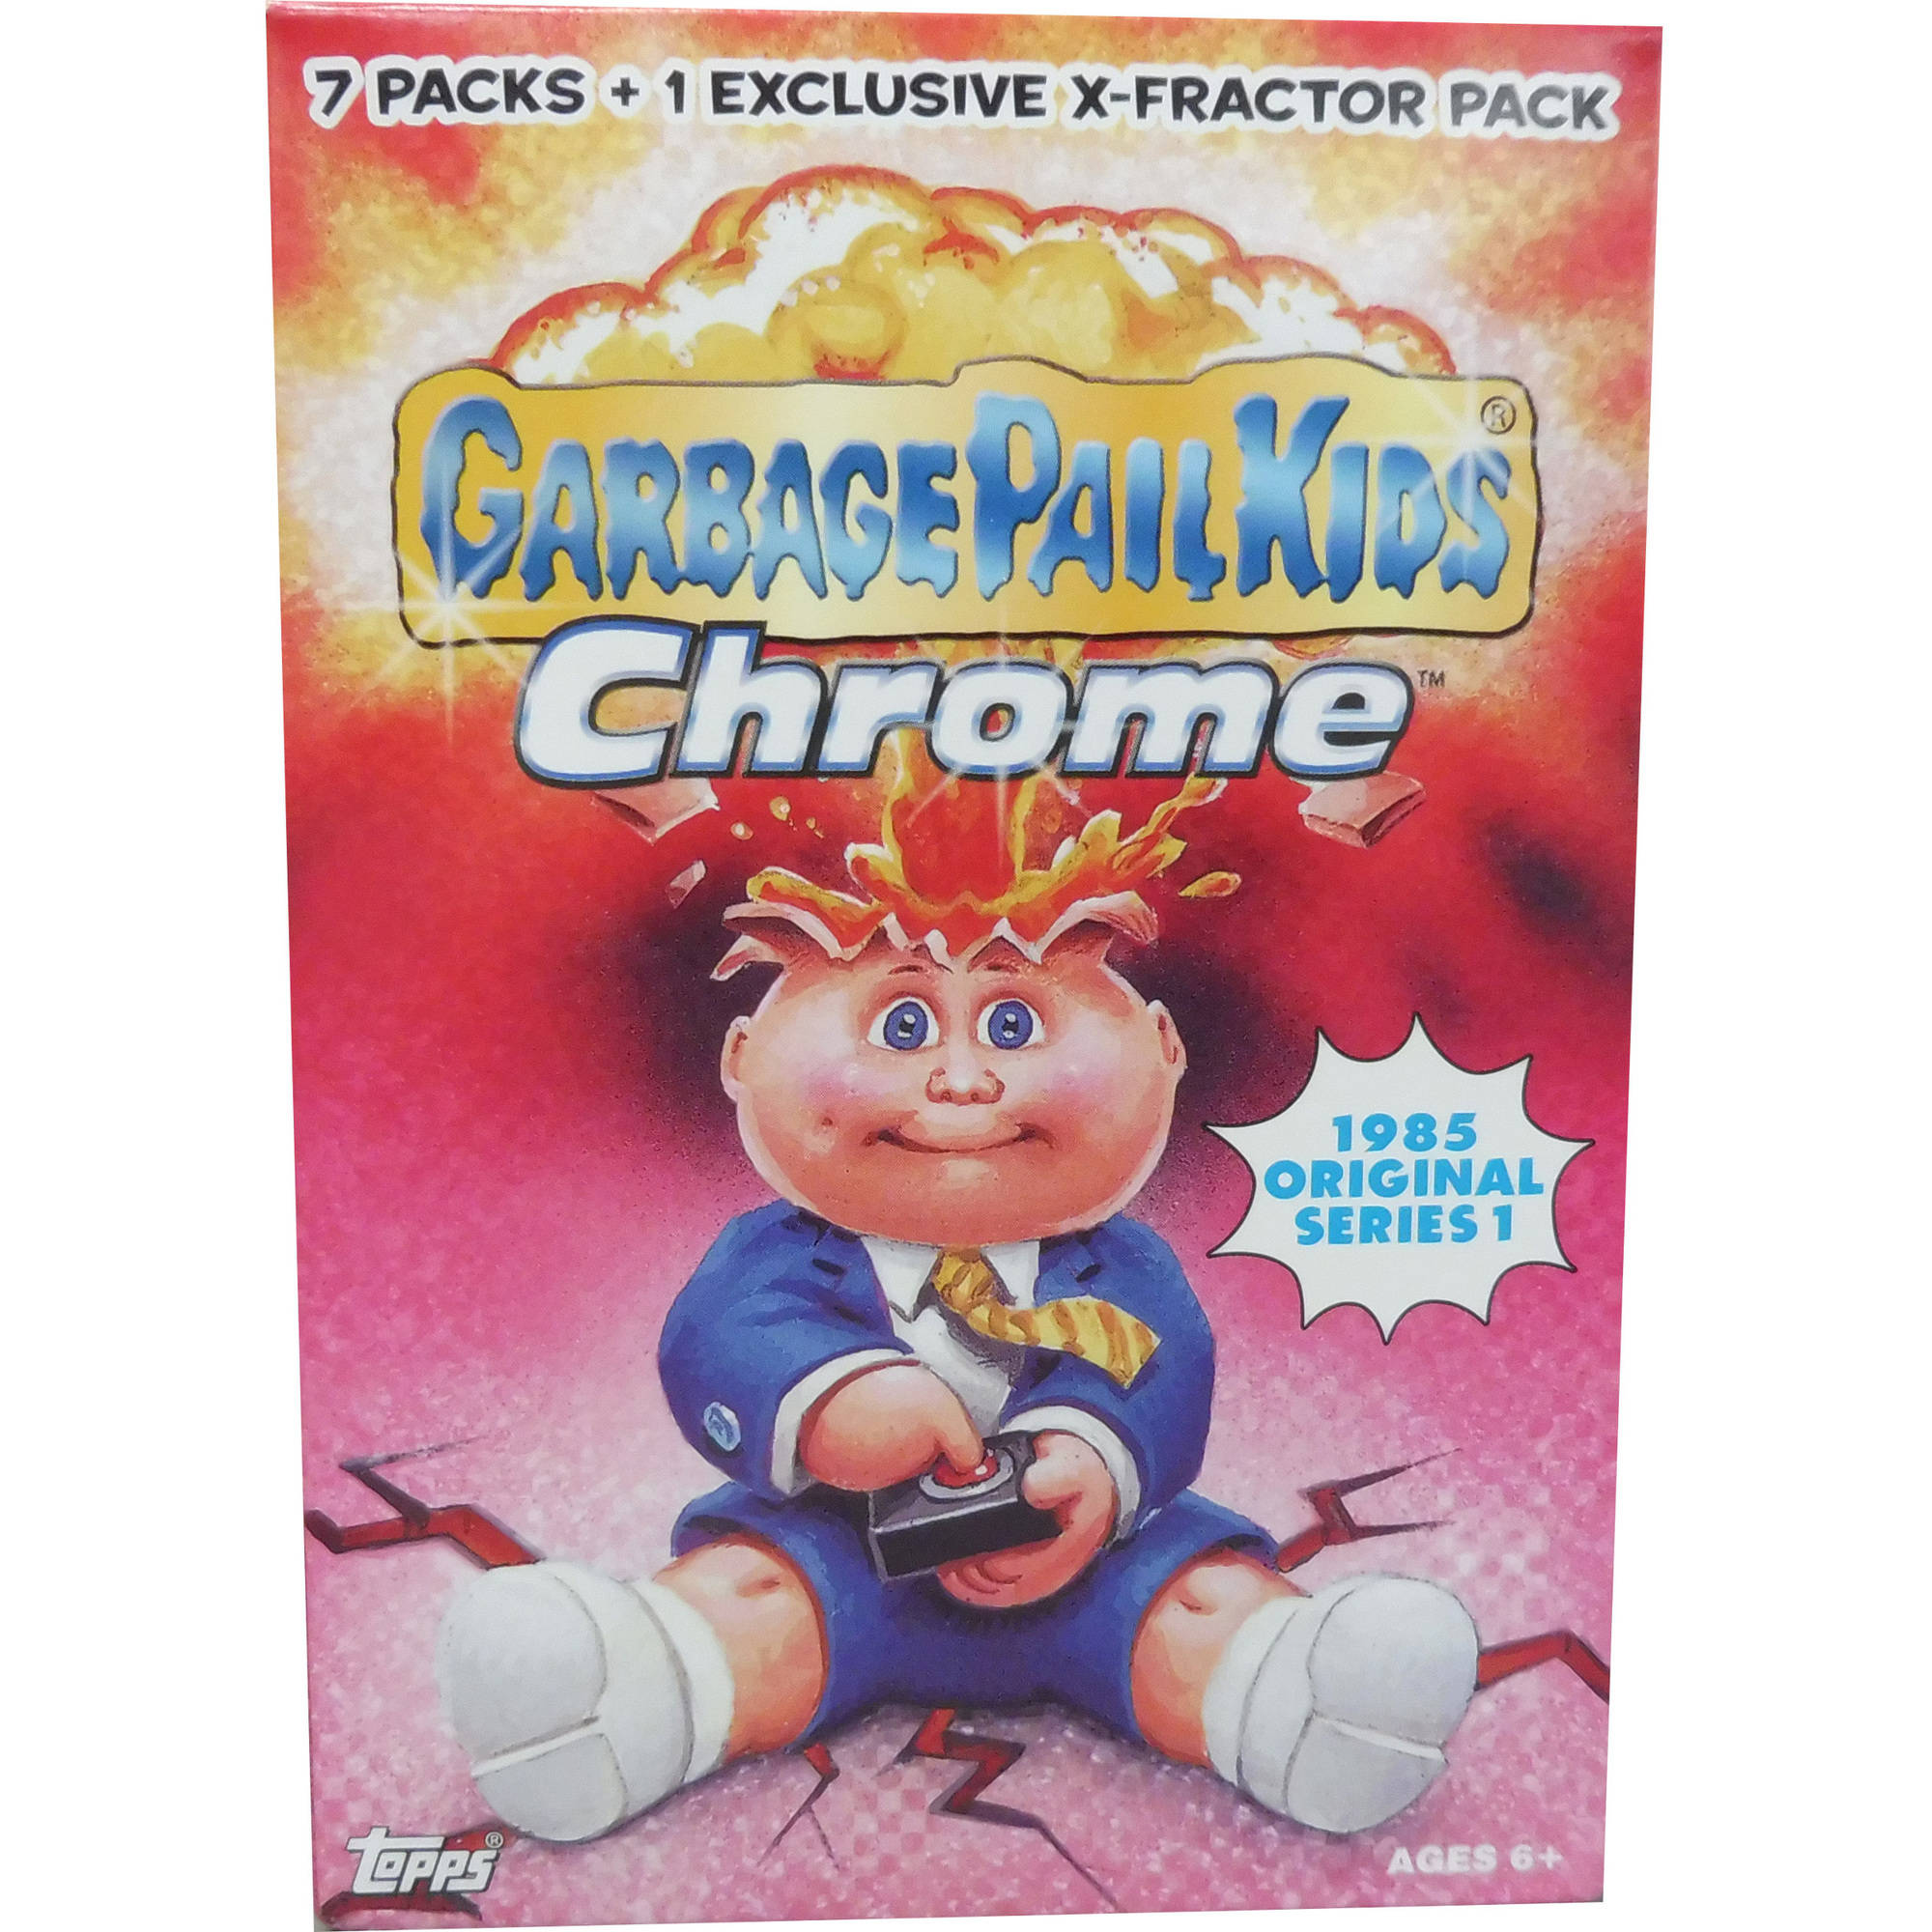 Garbage Pail Kids 2013 Chrome Trading Card Value Box